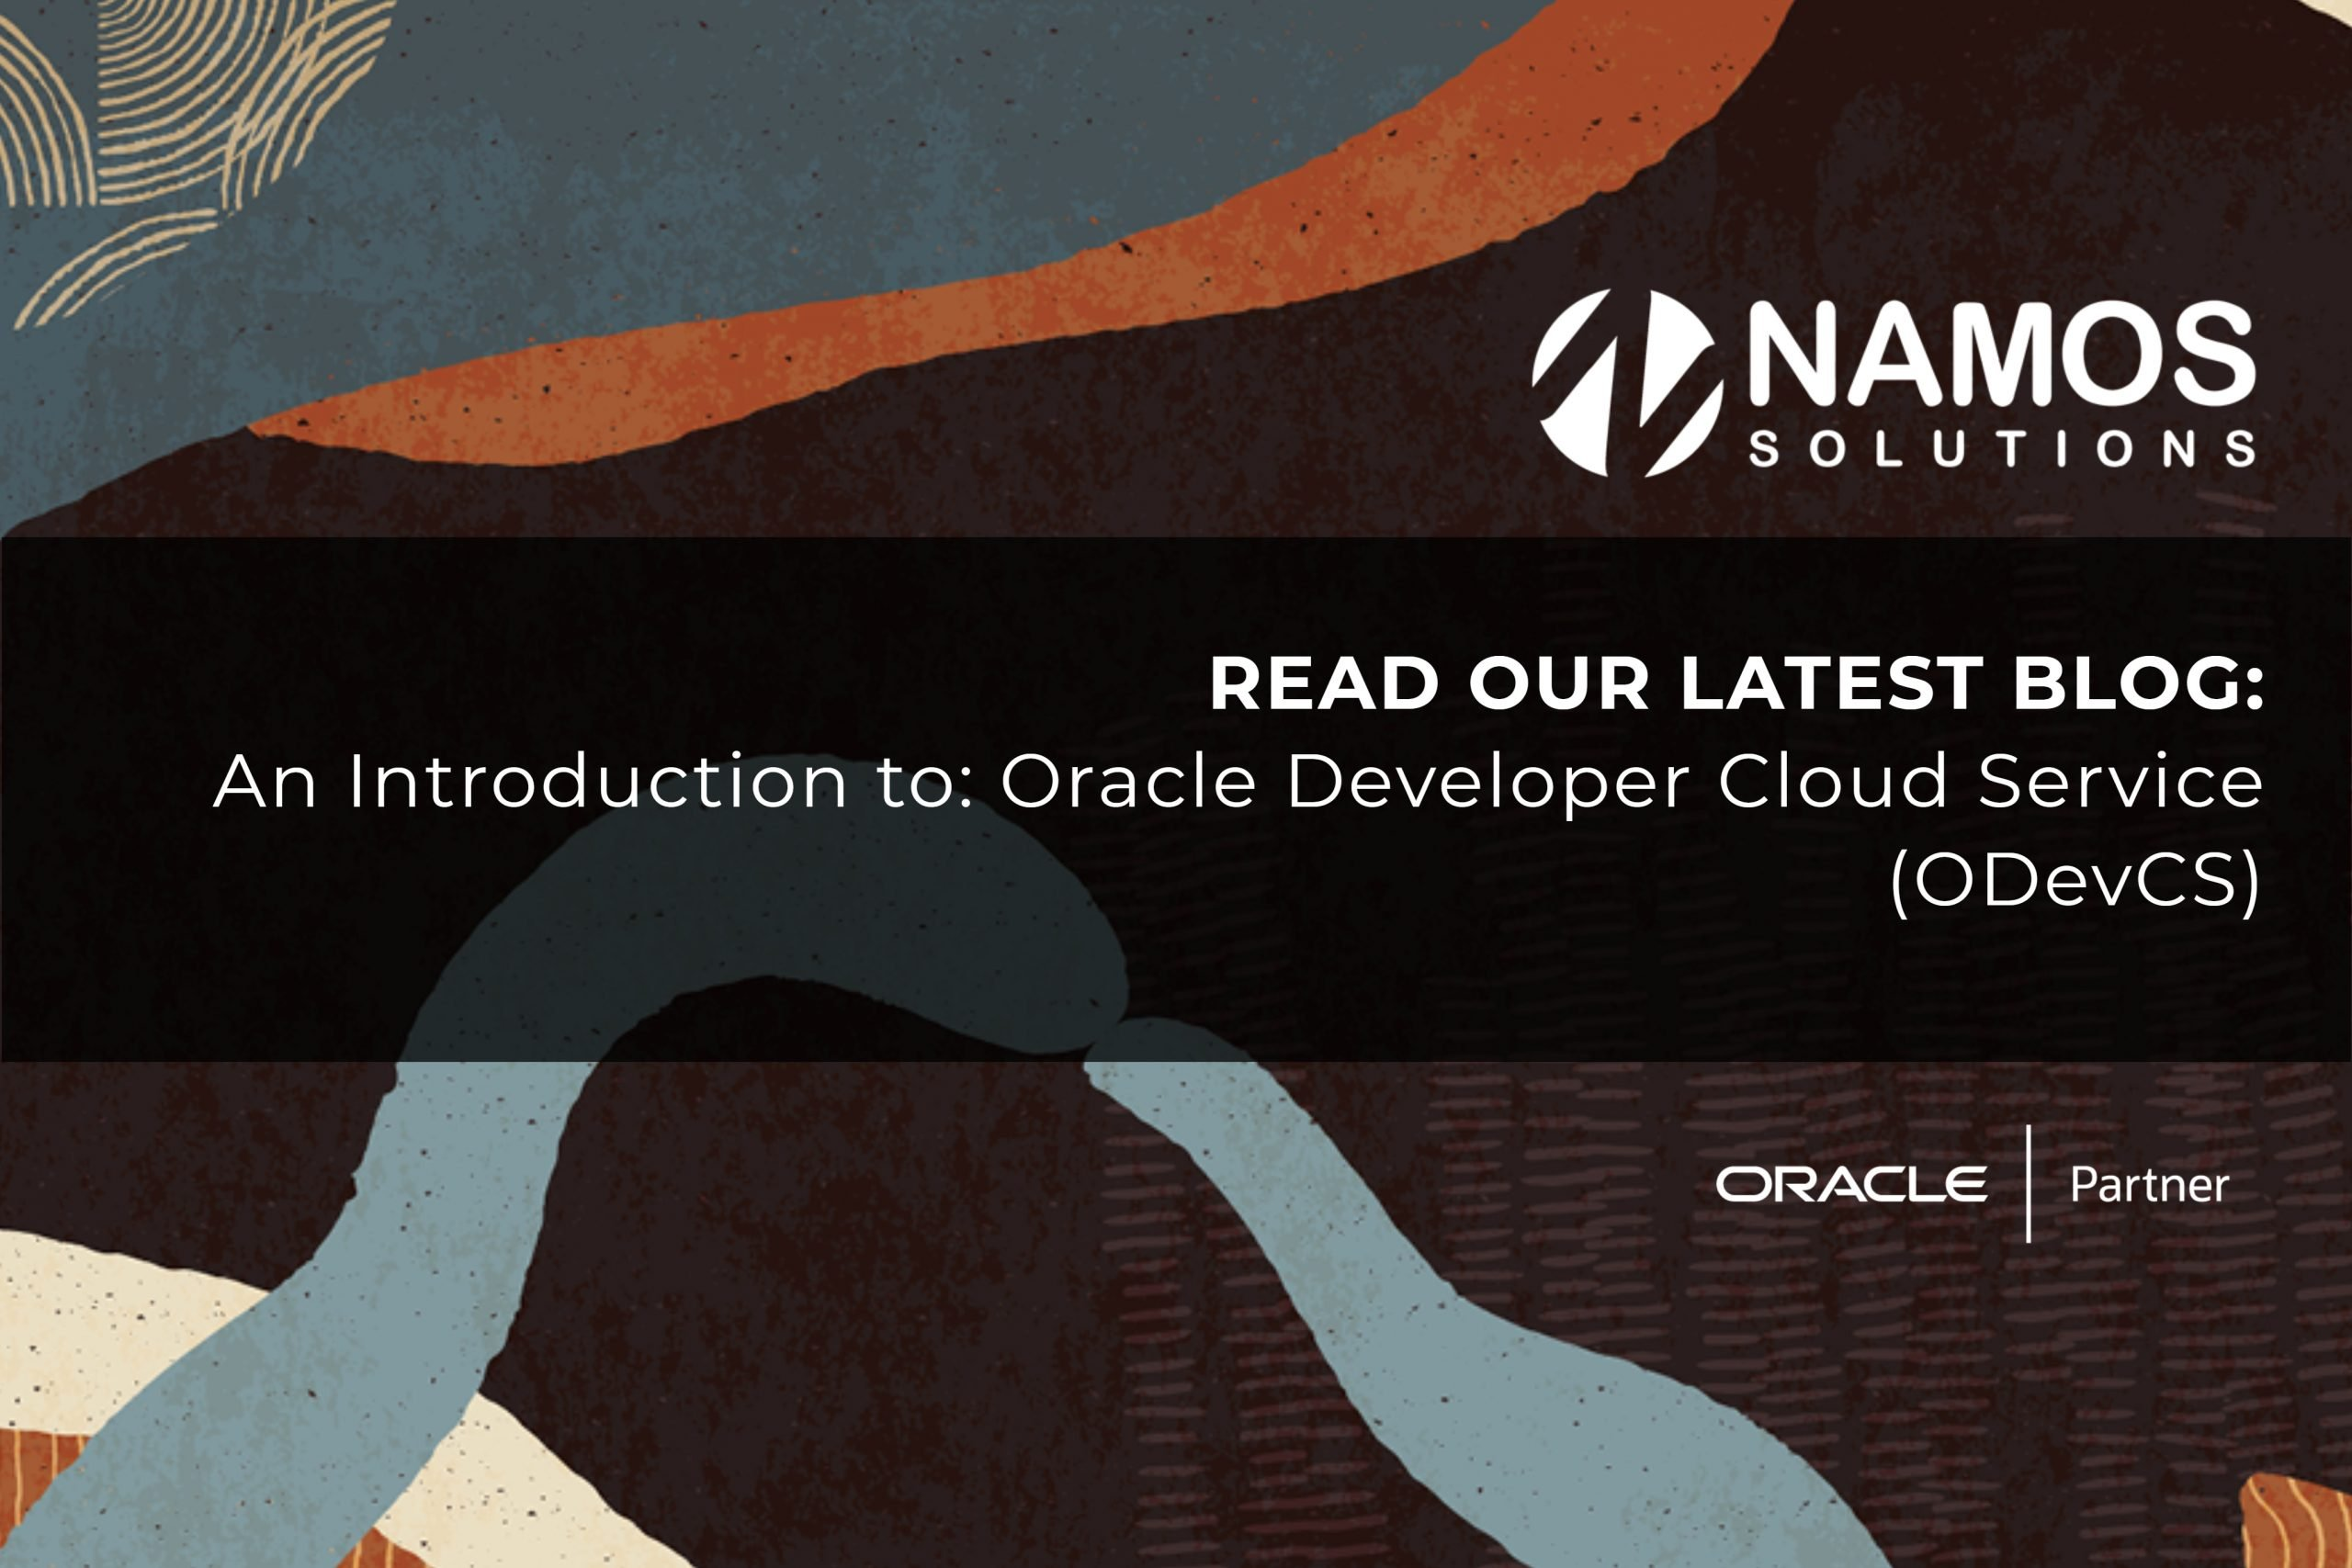 An Introduction to:  Oracle Developer Cloud Service (ODevCS)